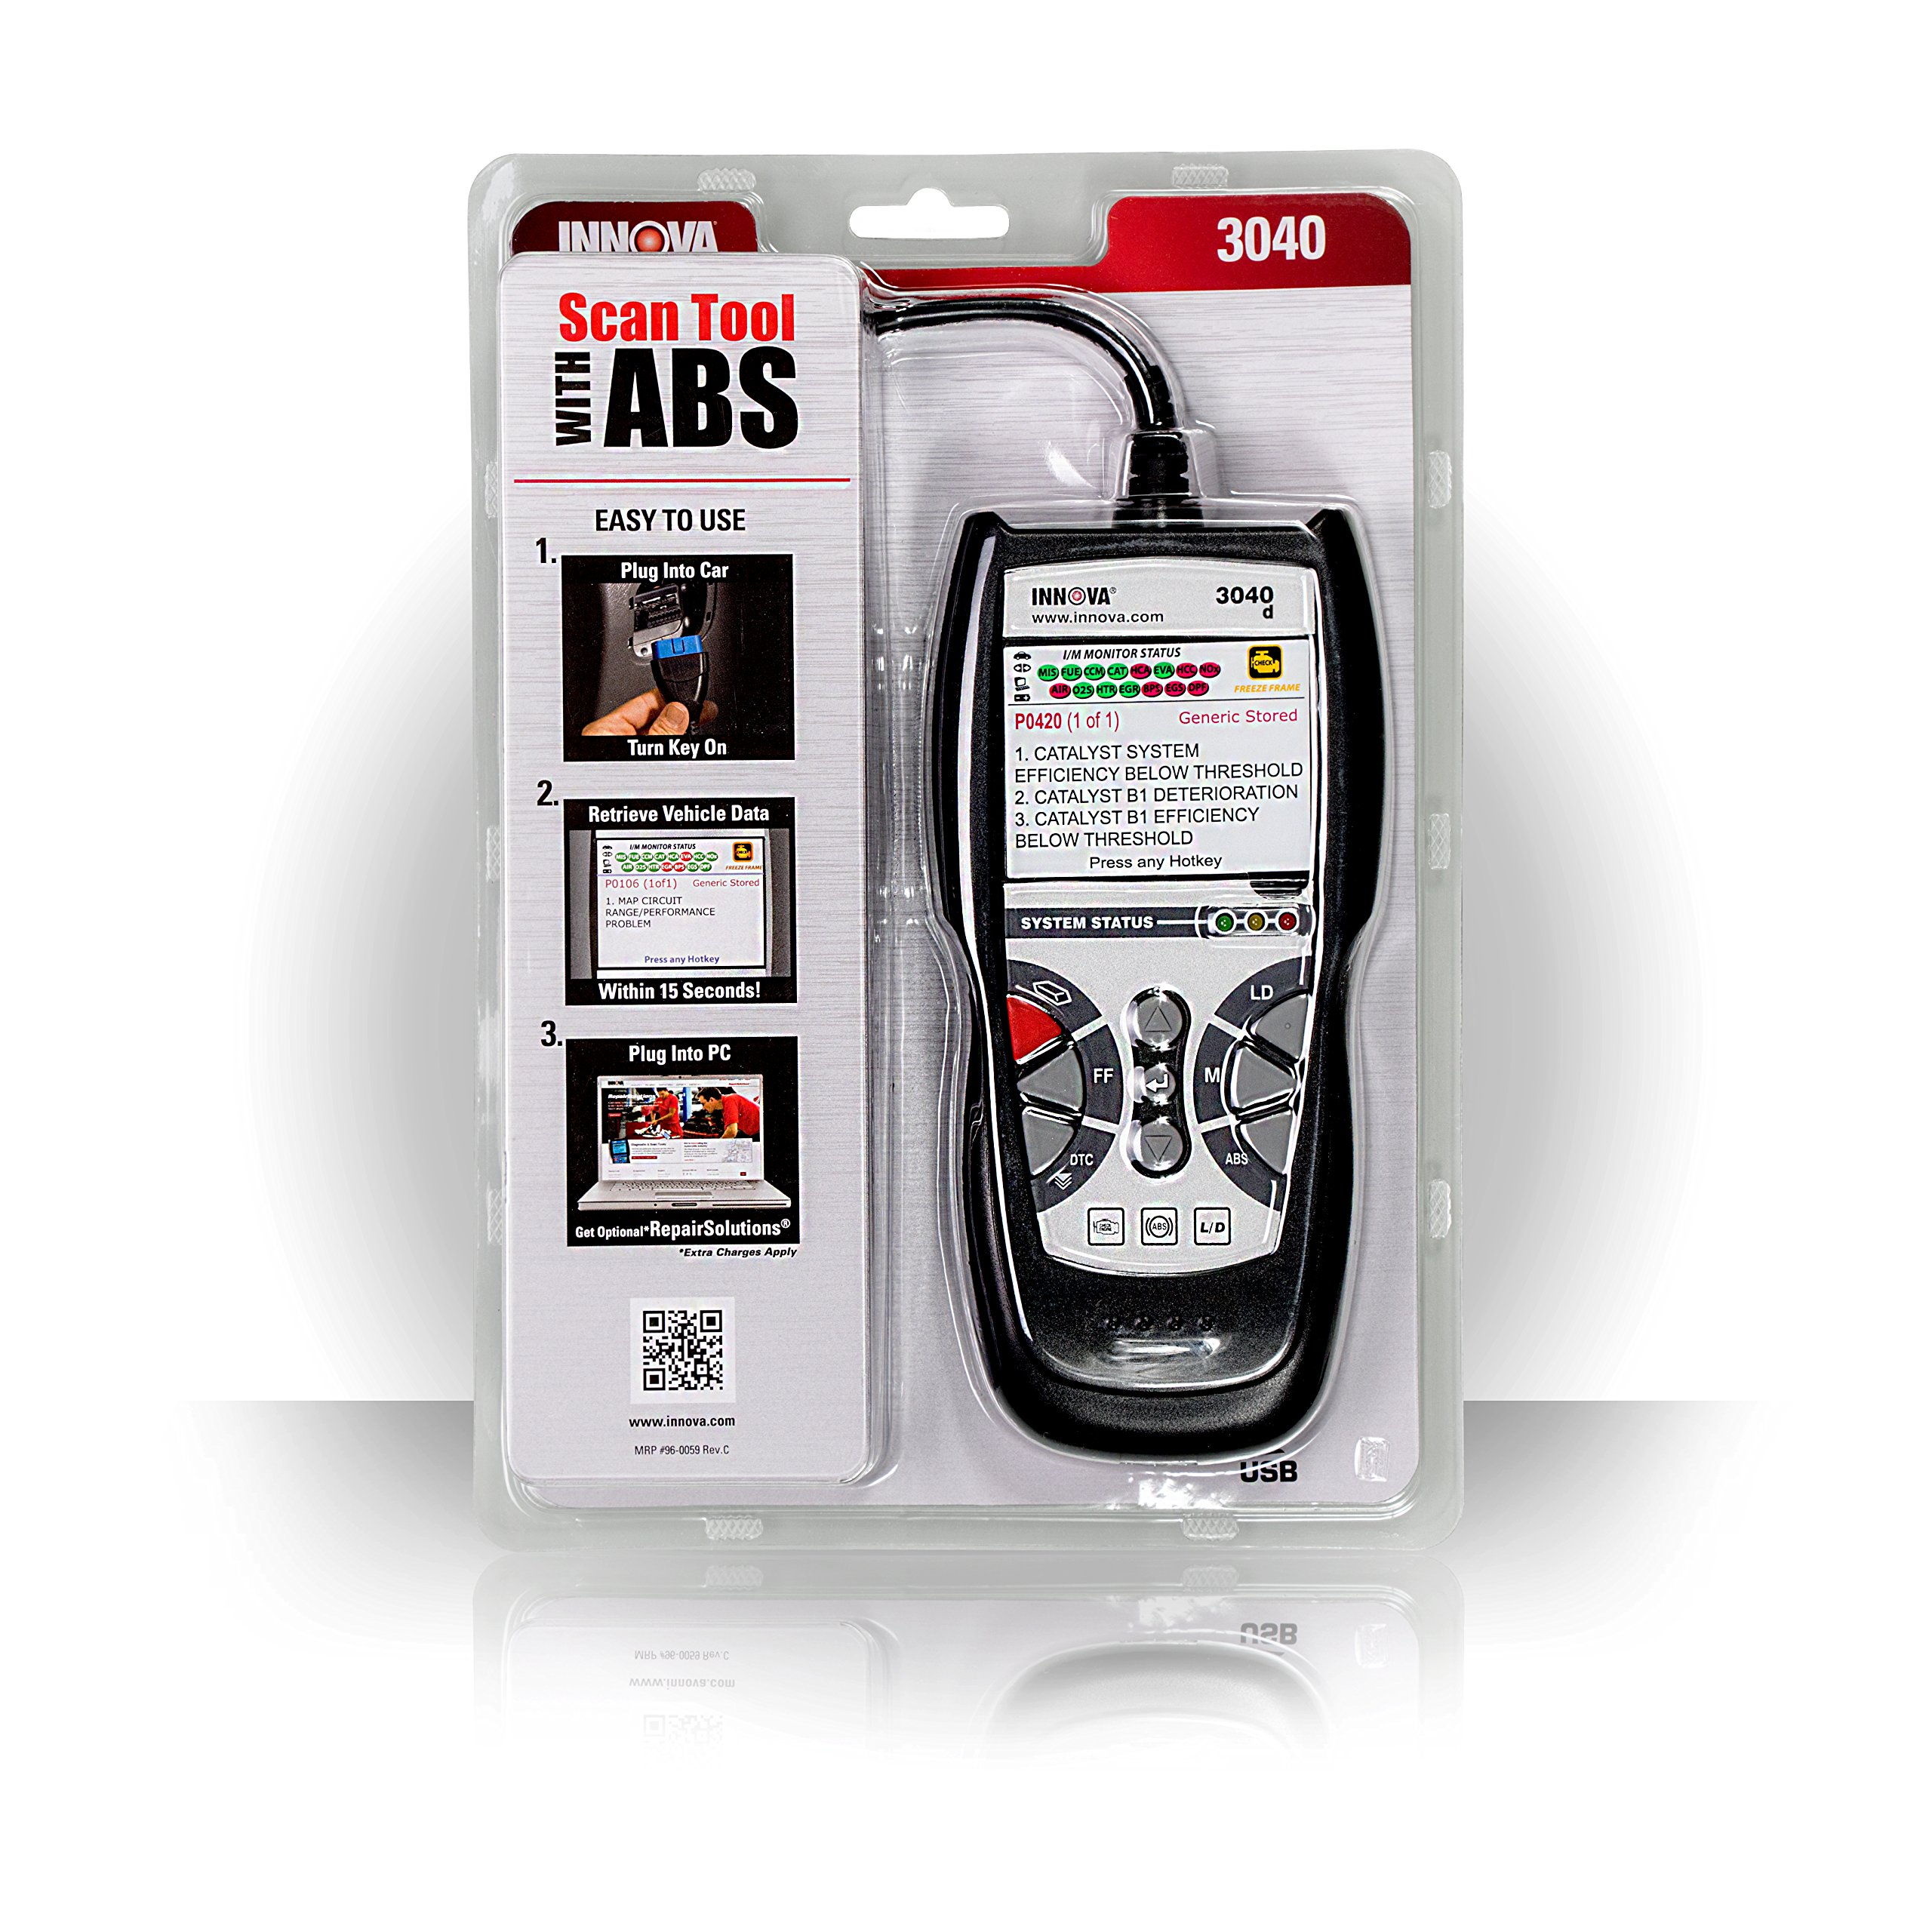 Innova 3040d Diagnostic Code Reader/Scan Tool with ABS and Live Data for OBD2 Vehicles by Innova (Image #4)